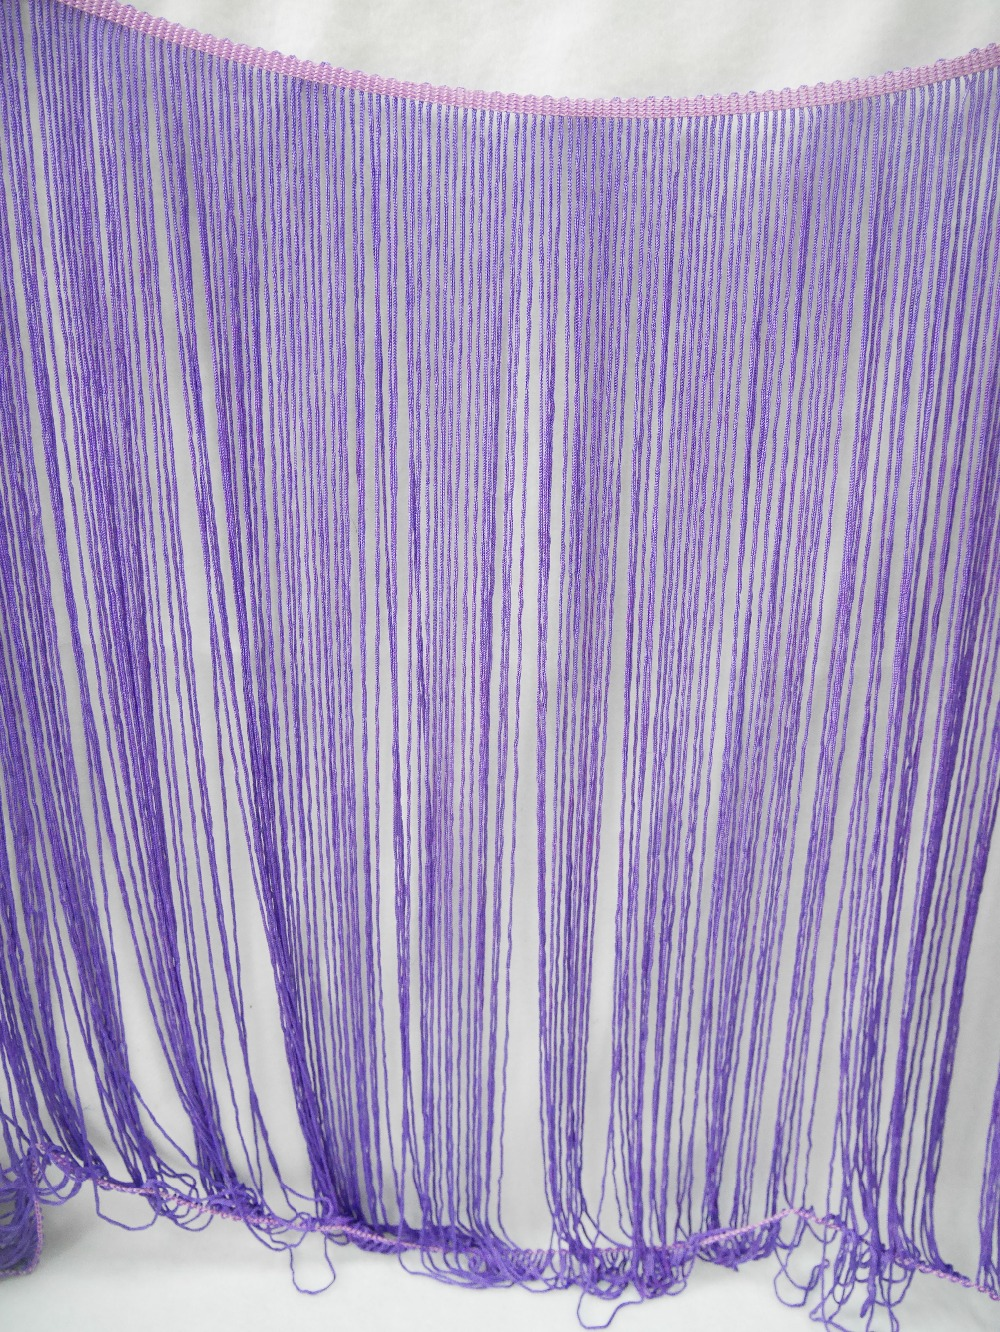 How to order colored contacts online - 90cm Wide 100 Rayon Fringe 30yards Color This Listing For Custom Dye Order Only Please Contact Before Making Order